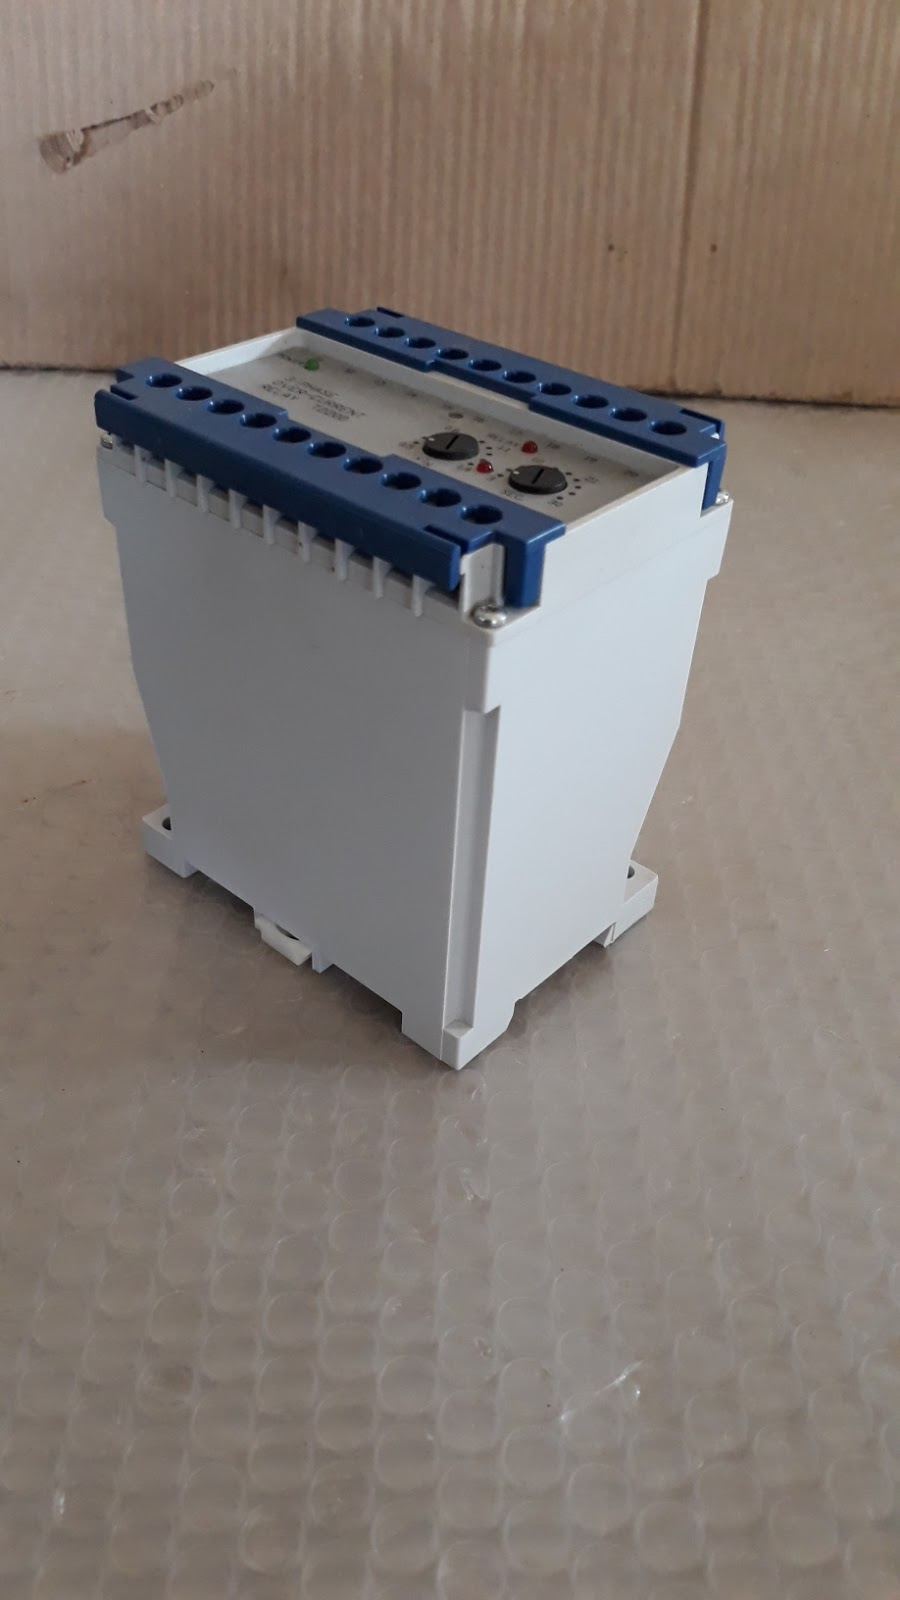 Selco 3 Phase Current Relay T2200 Atlas Shipcare Services Breaking Type No 2200 02 Supply Voltage 1 450v Ac 2 400 V In 5a Condition Pcs New